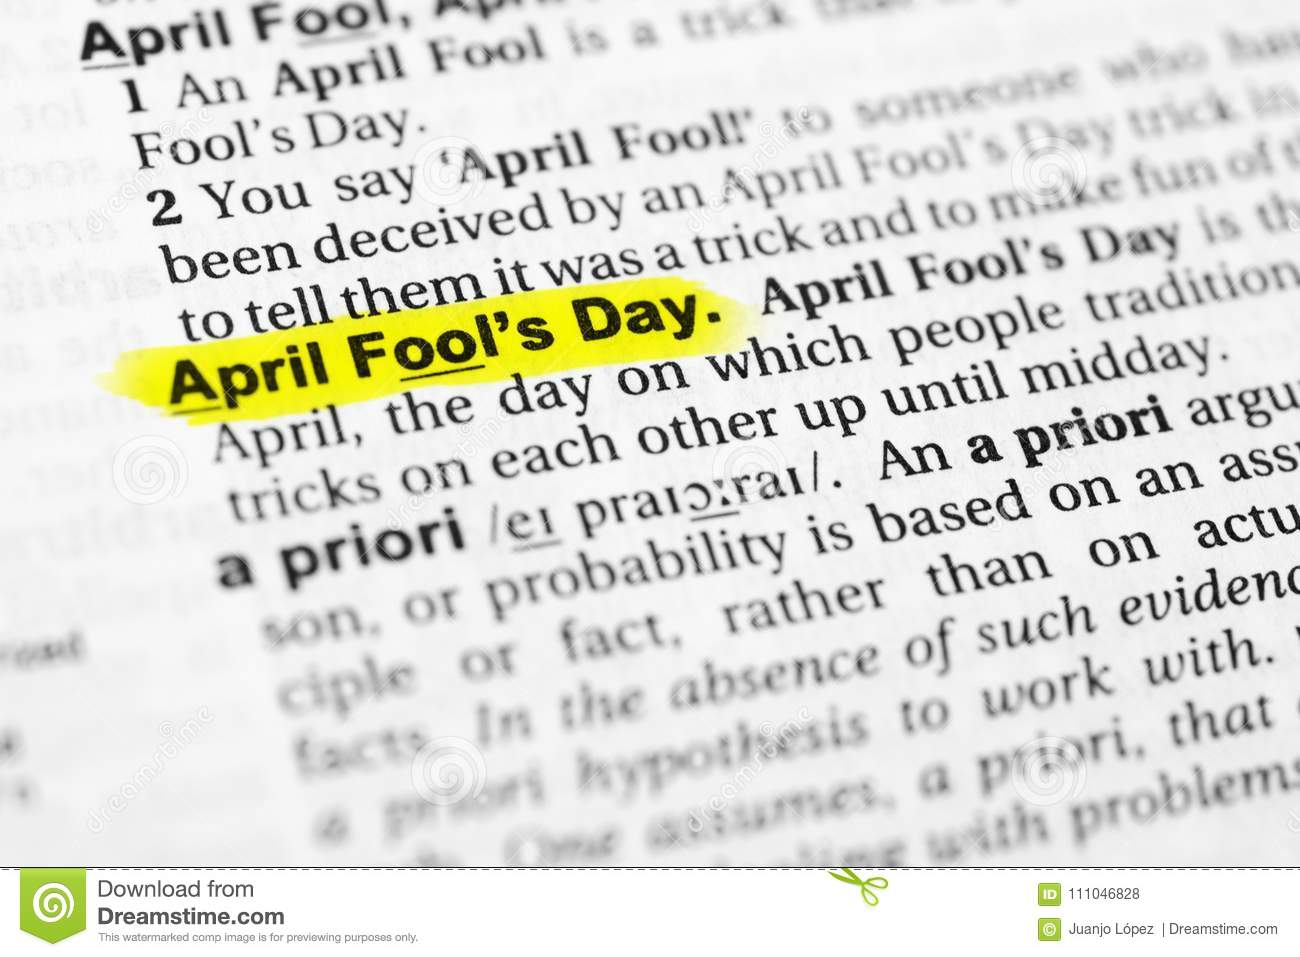 What does the word fool really mean?